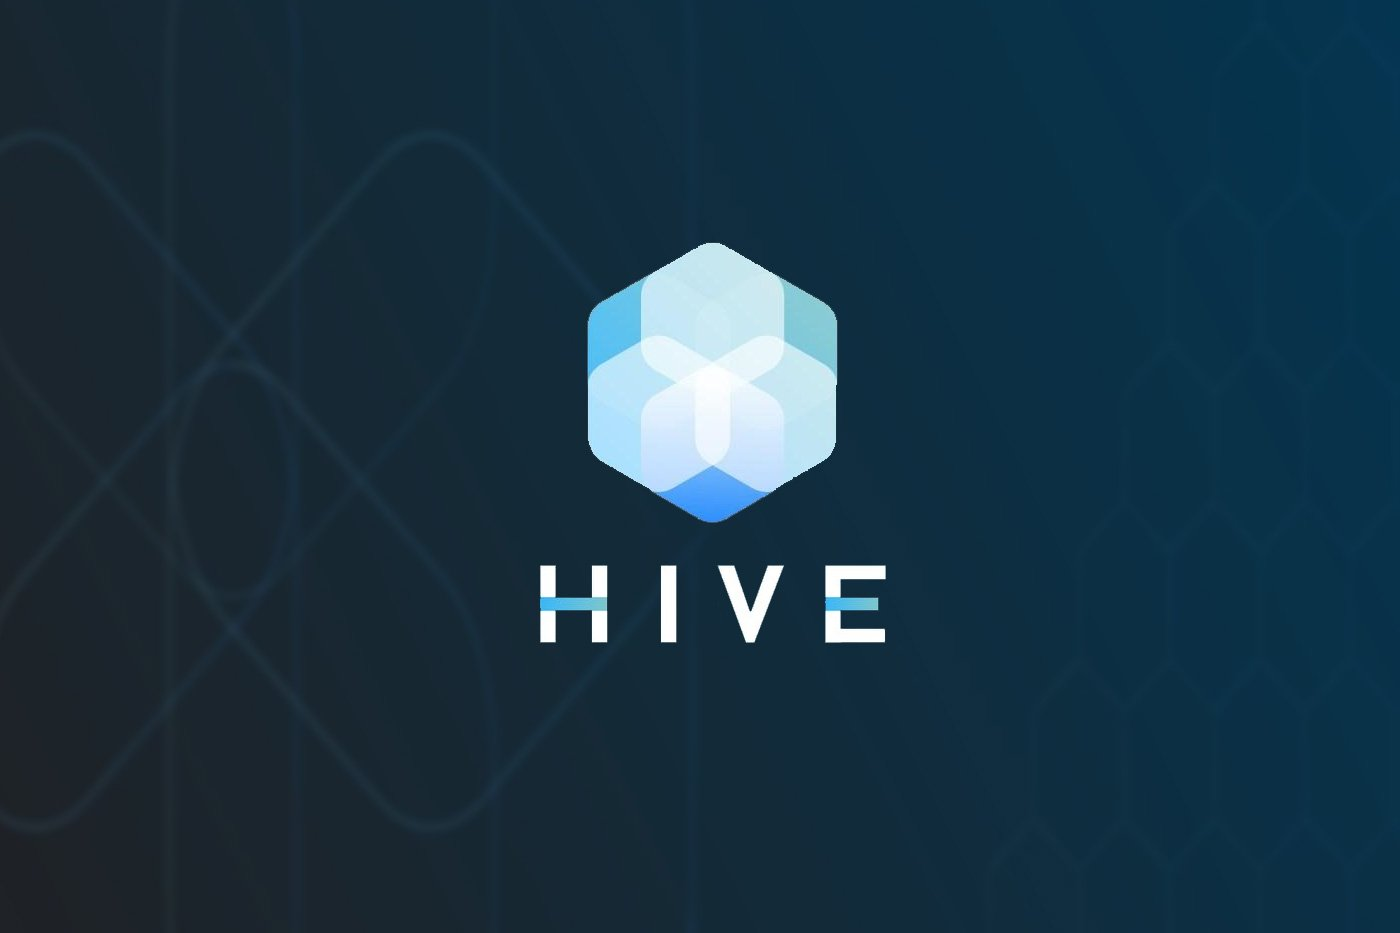 hive cryptocurrency stock price